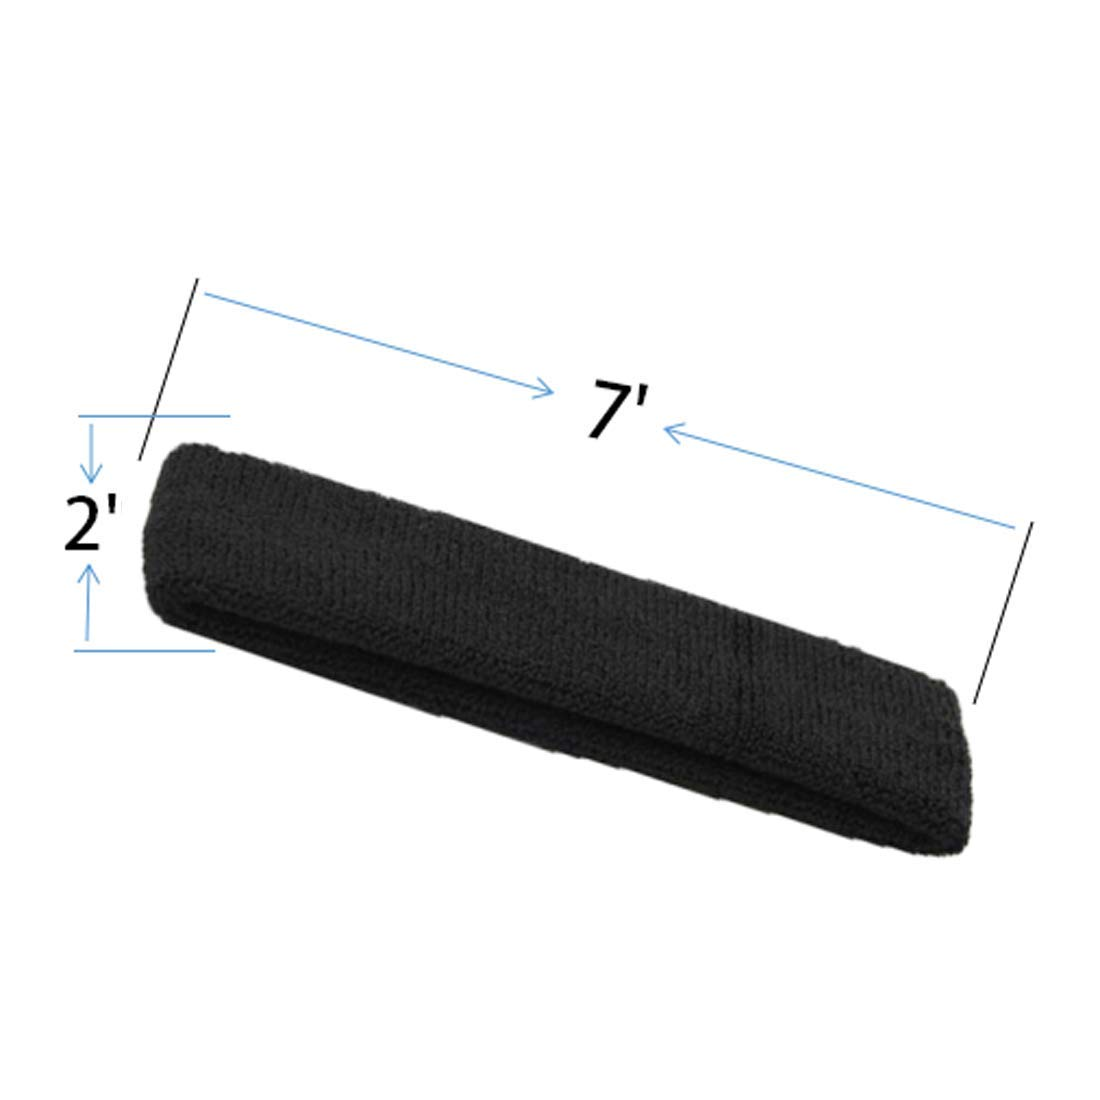 Basketball High Stretch /& Moisture Wicking Soccer BBOLIVE Sports Headband for Men and Woman Gym Athletic Cotton Terry Cloth Head Sweatbands for Tennis Yoga Workout Running